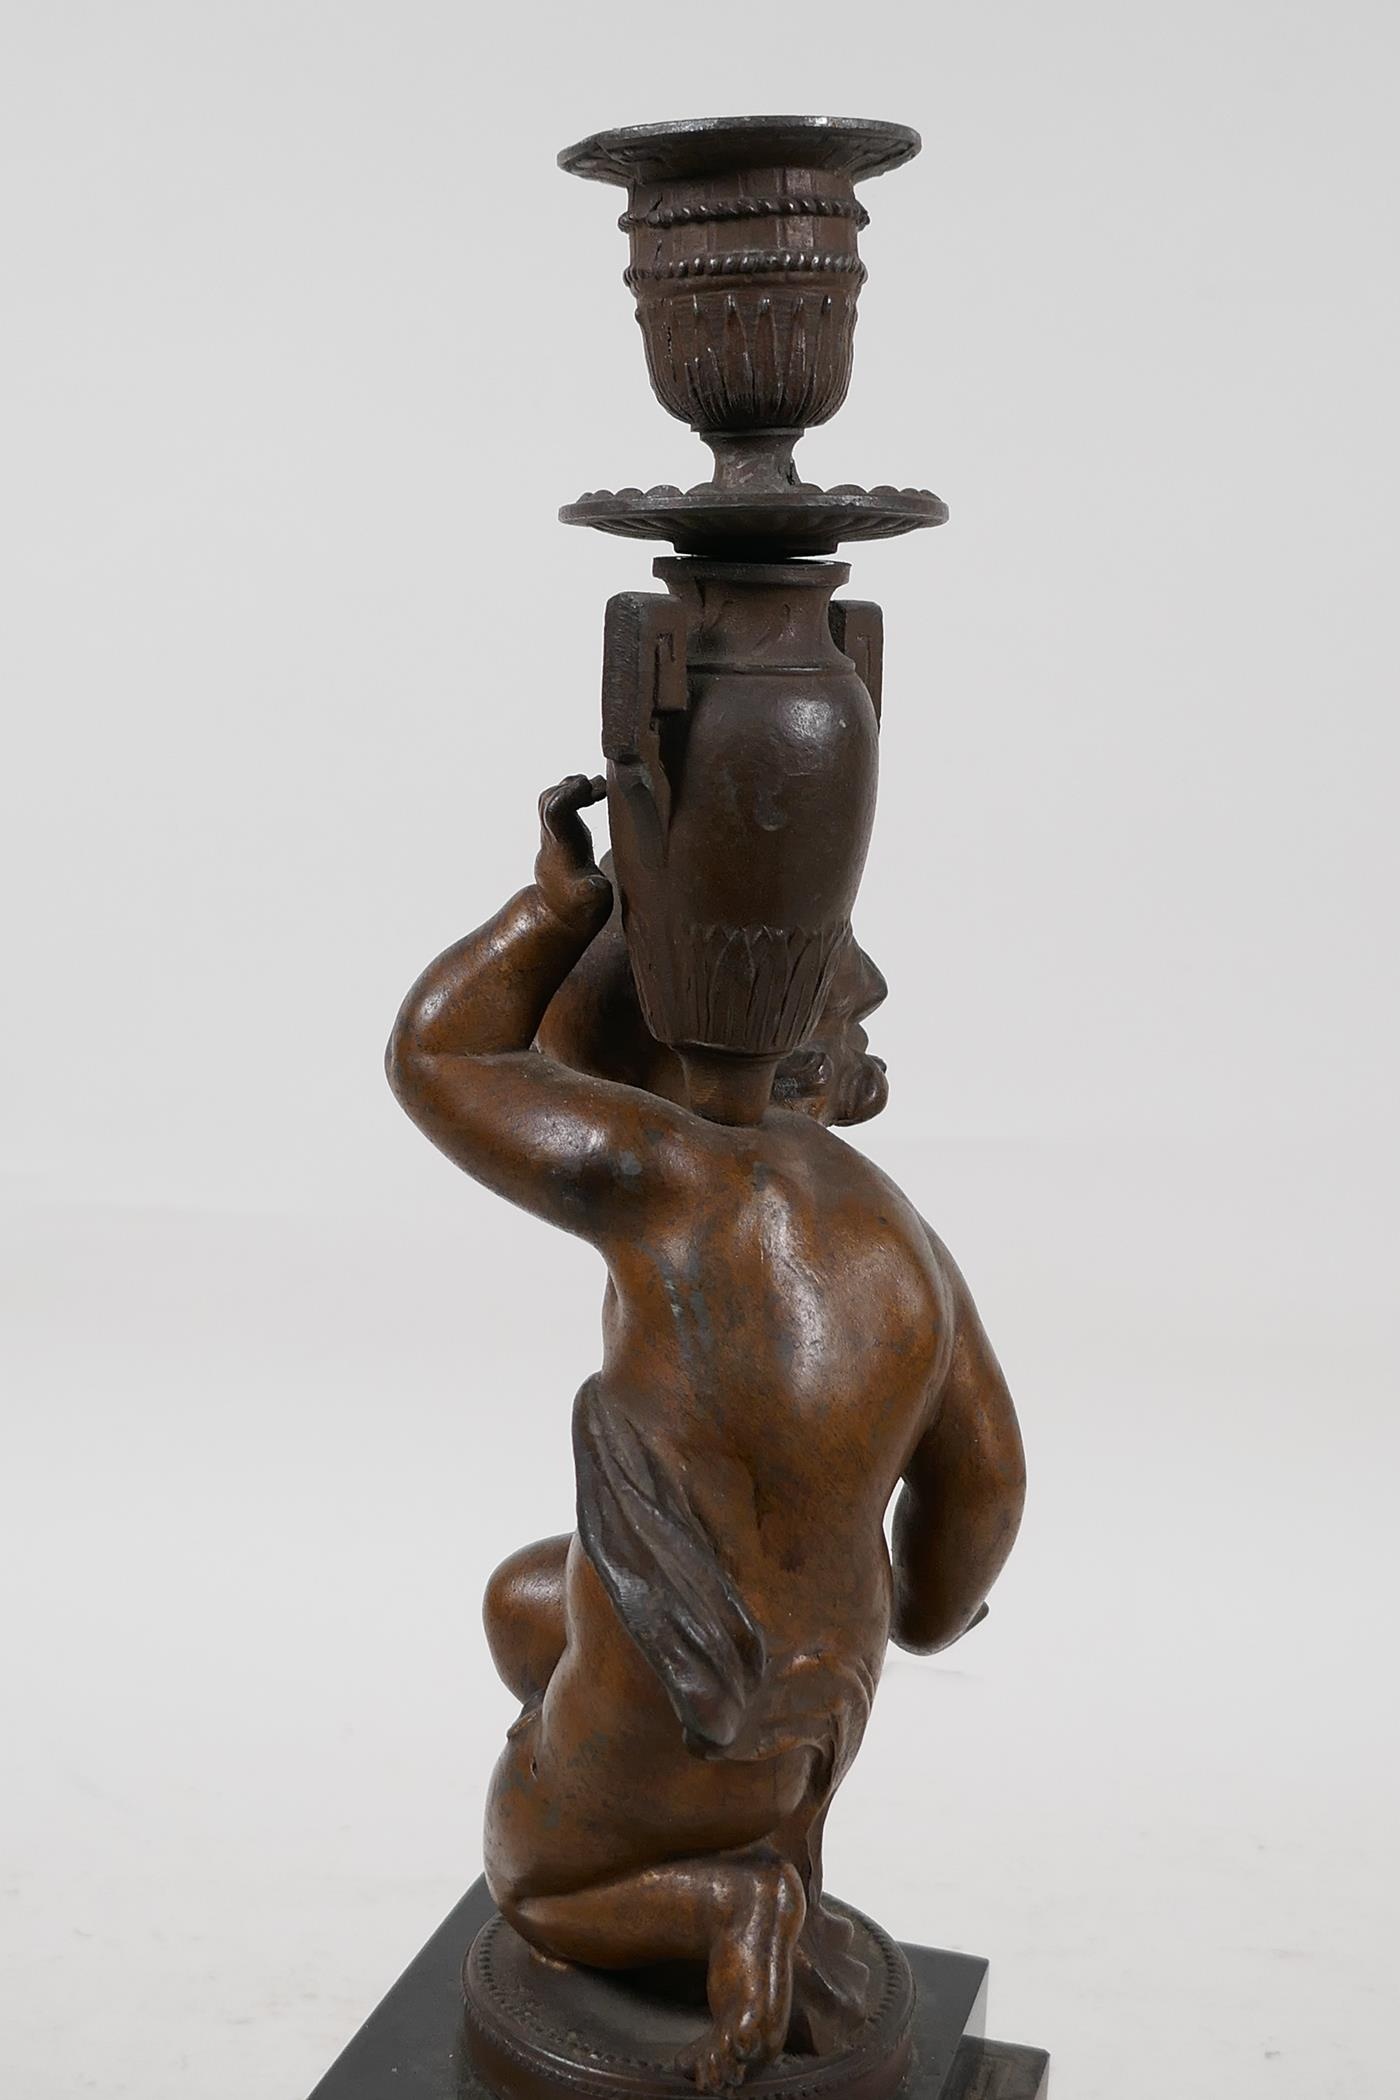 """A C19th bronze candlestick cast as a cherub, raised on stepped marble base, 13"""" high - Image 5 of 6"""